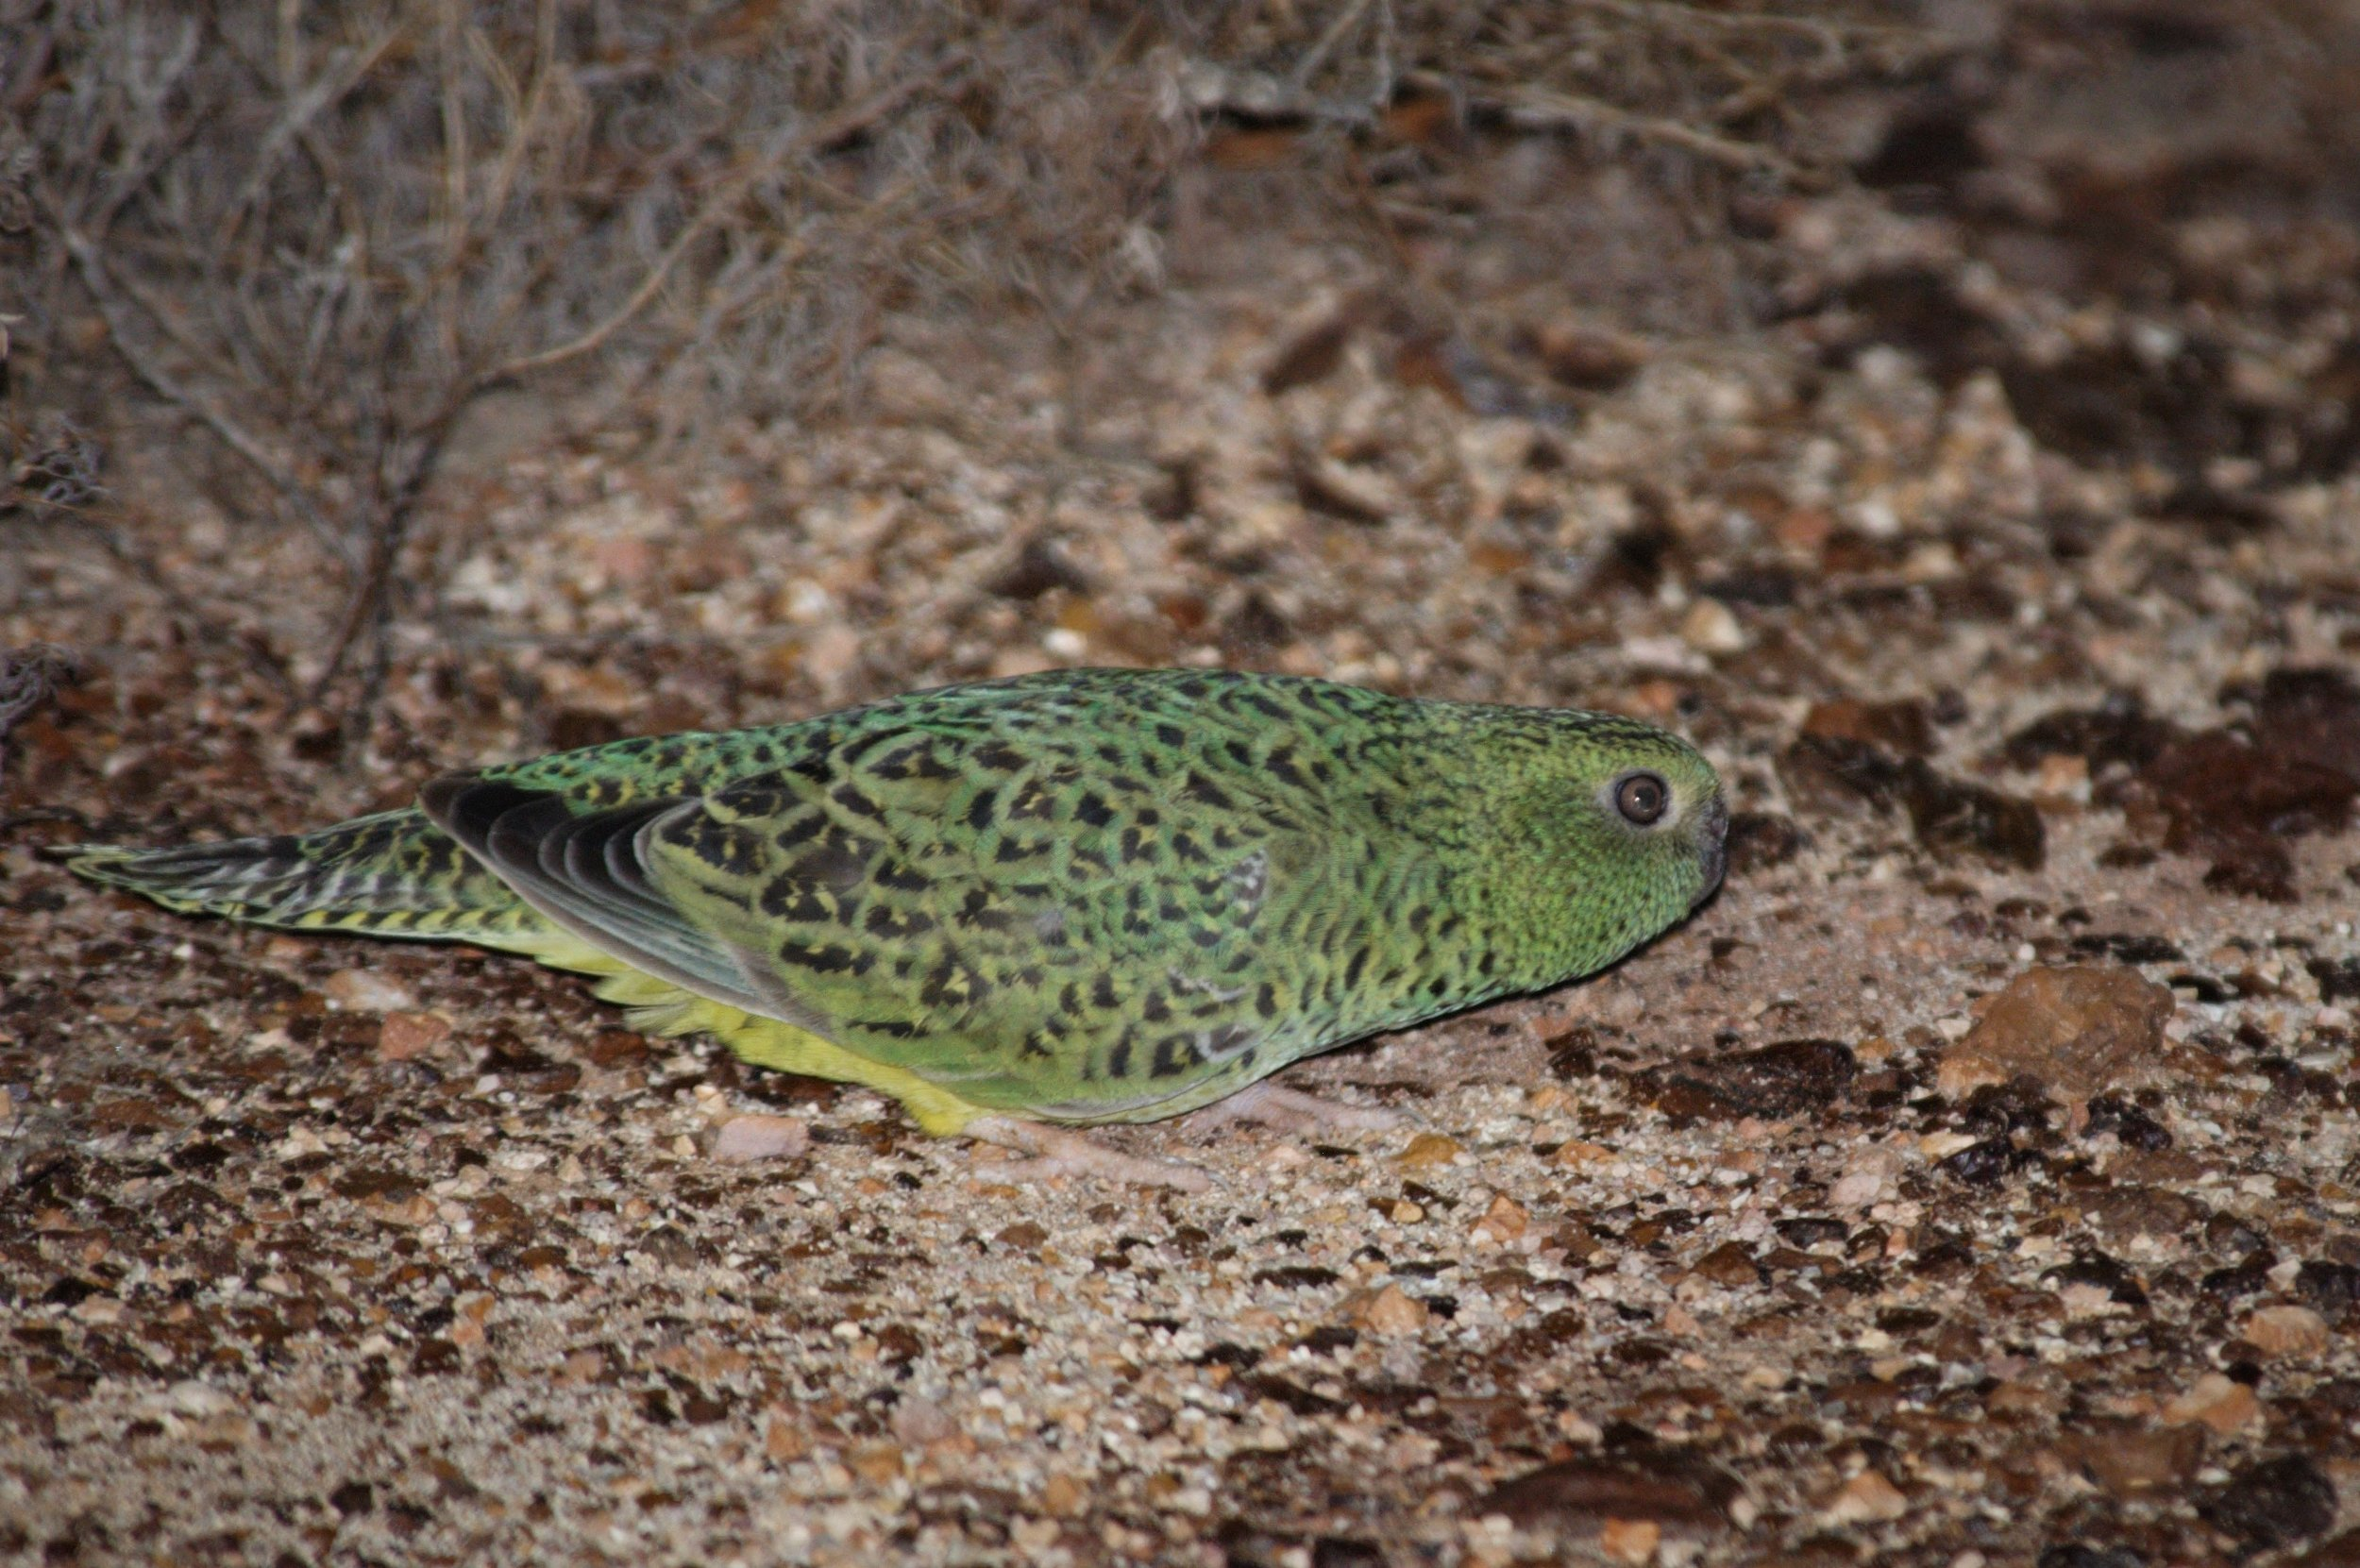 Nick Leseberg captured this image of the elusive night parrot